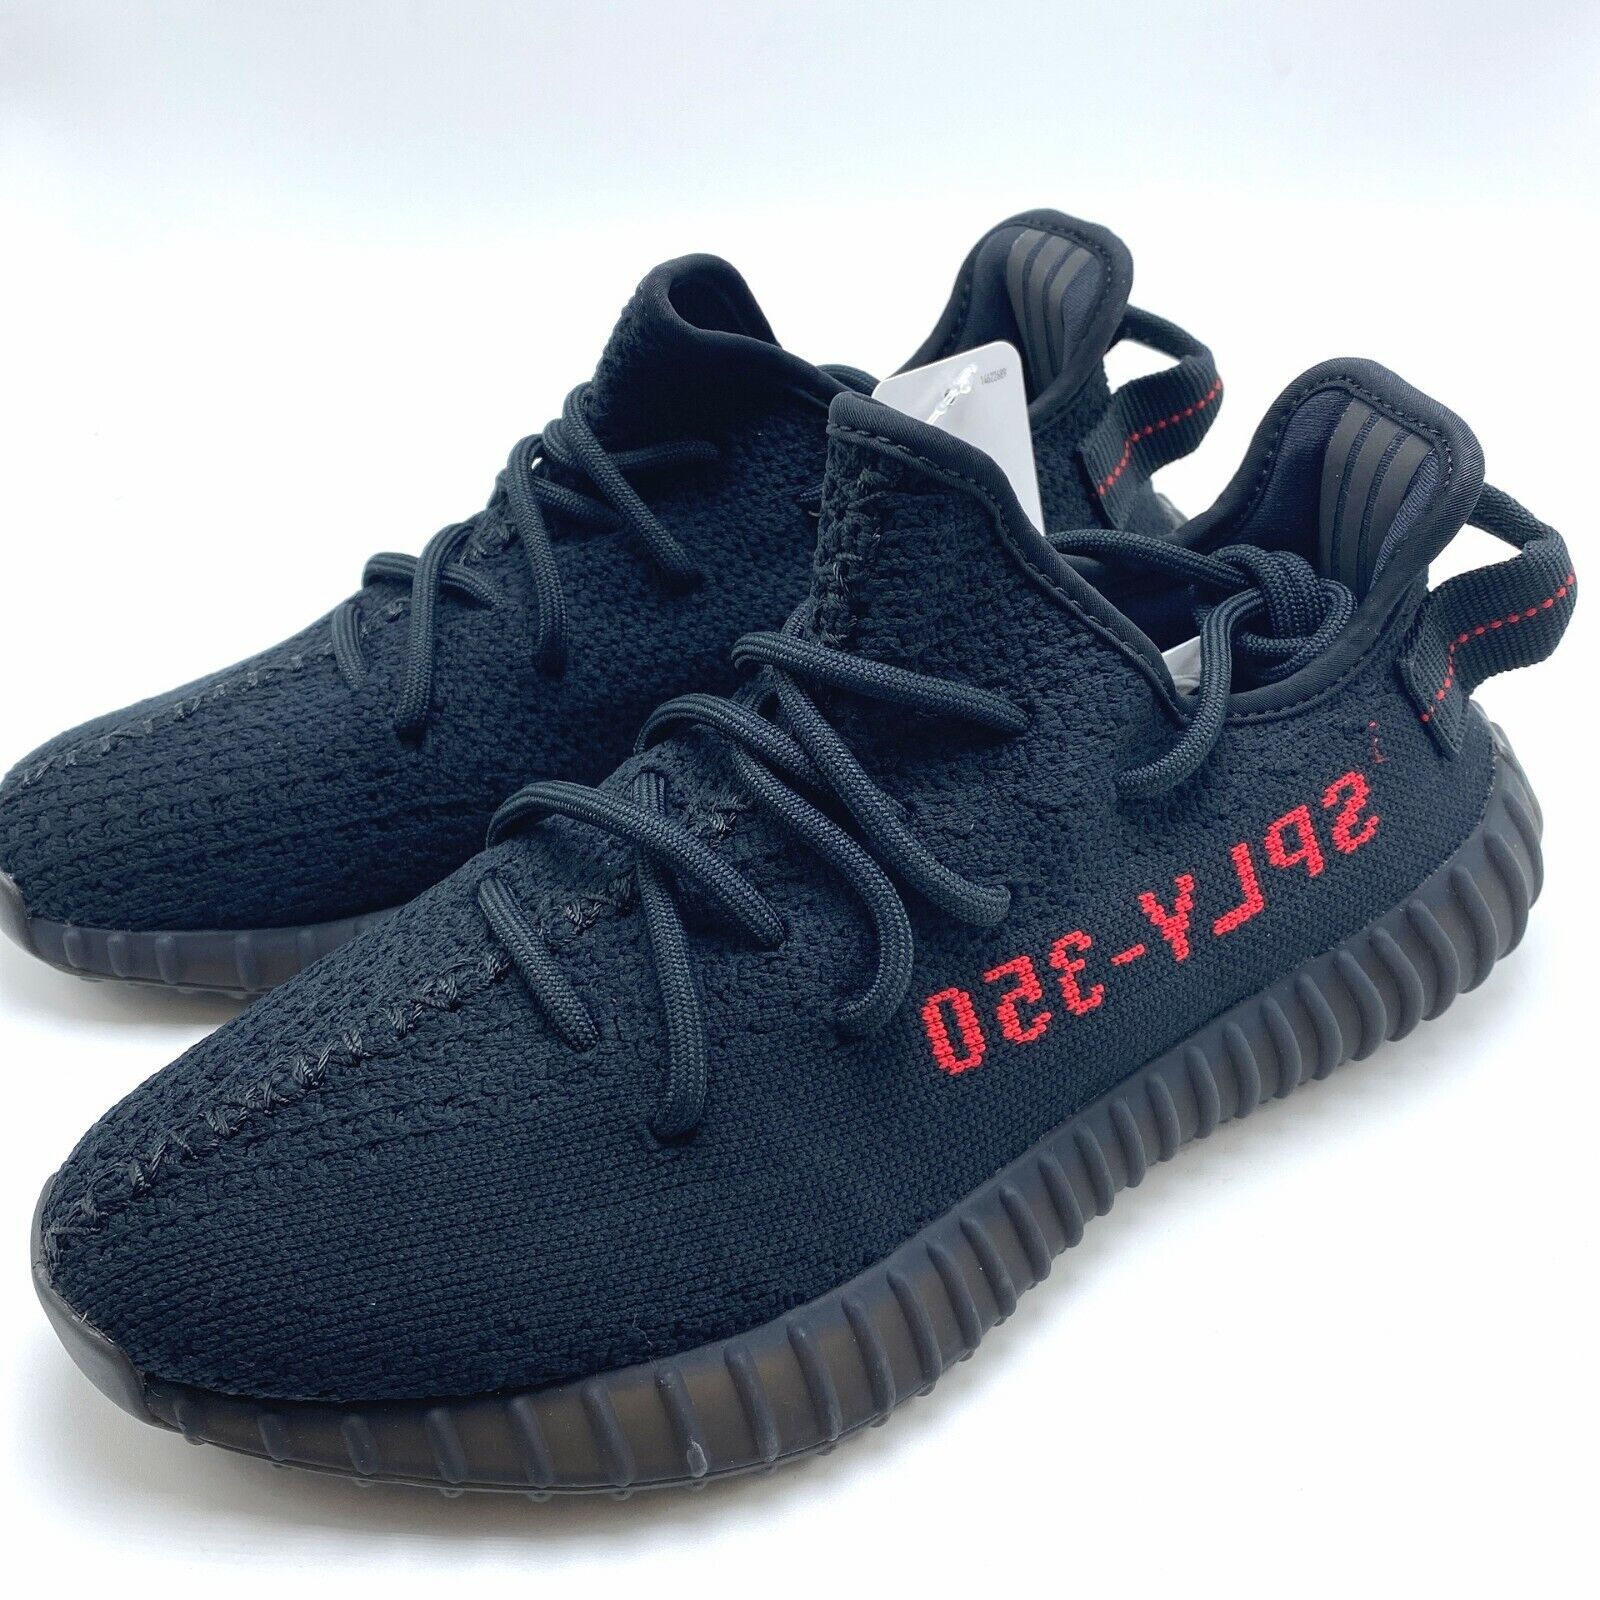 yeezy sply 350 black and red